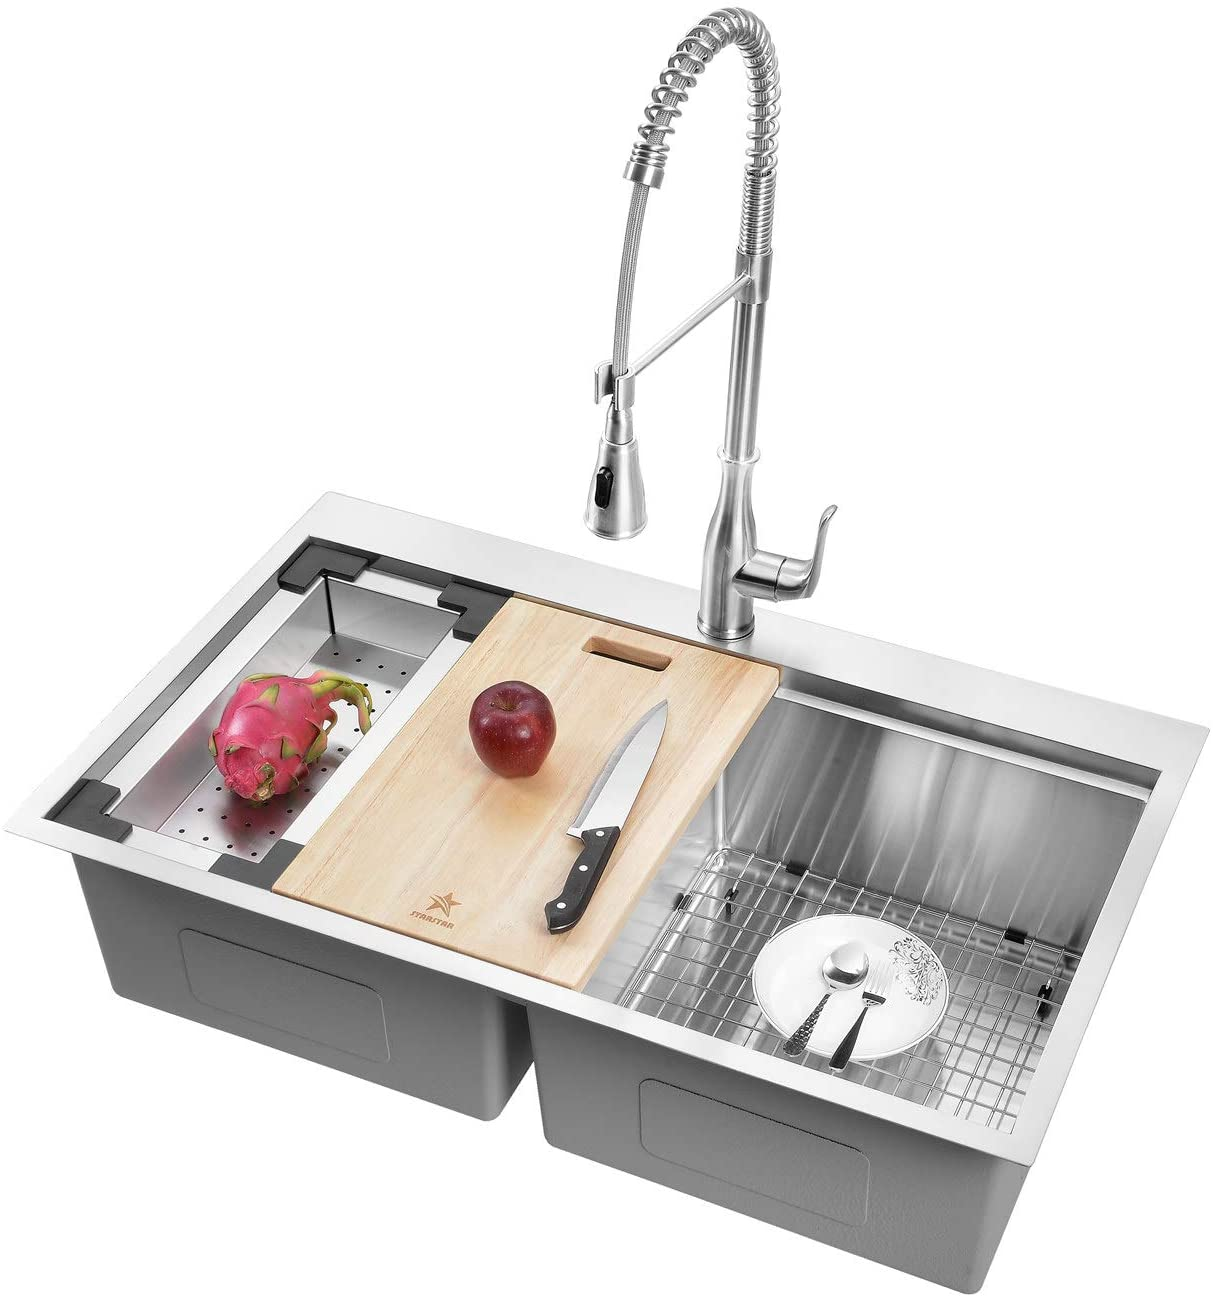 STARSTAR Workstation Ledge Drop-in/Topmount Double Bowl 304 Stainless Steel Kitchen Sink, With Two Grids, Colander, Cutting Board, Two Strainers (30 x 22 x 10 50/50)